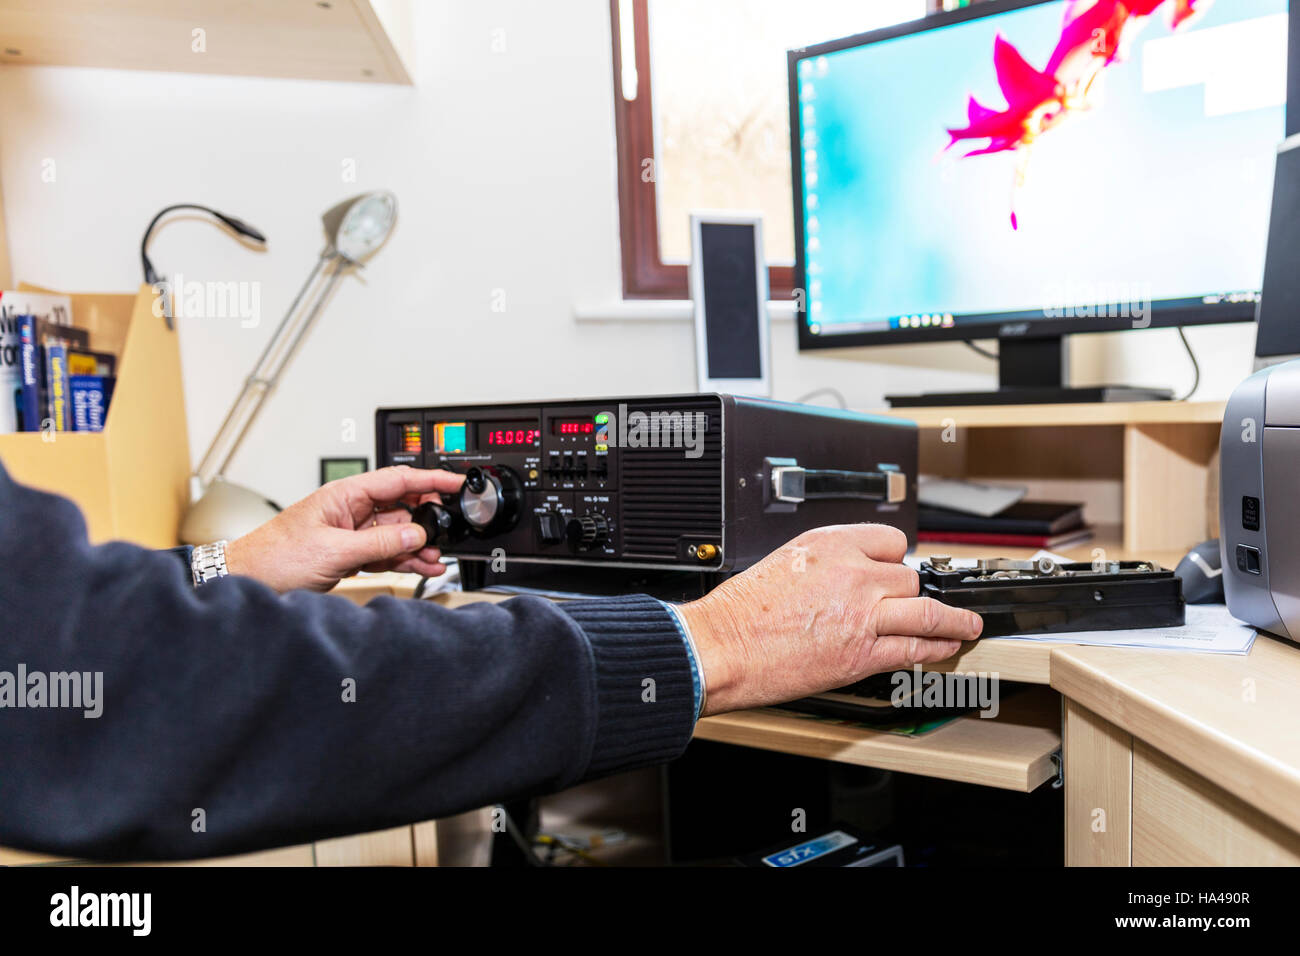 amateur radio enthusiast Radio ham man using Yaesu FRG 7000 High Frequency receiver UK England GB changing frequency - Stock Image